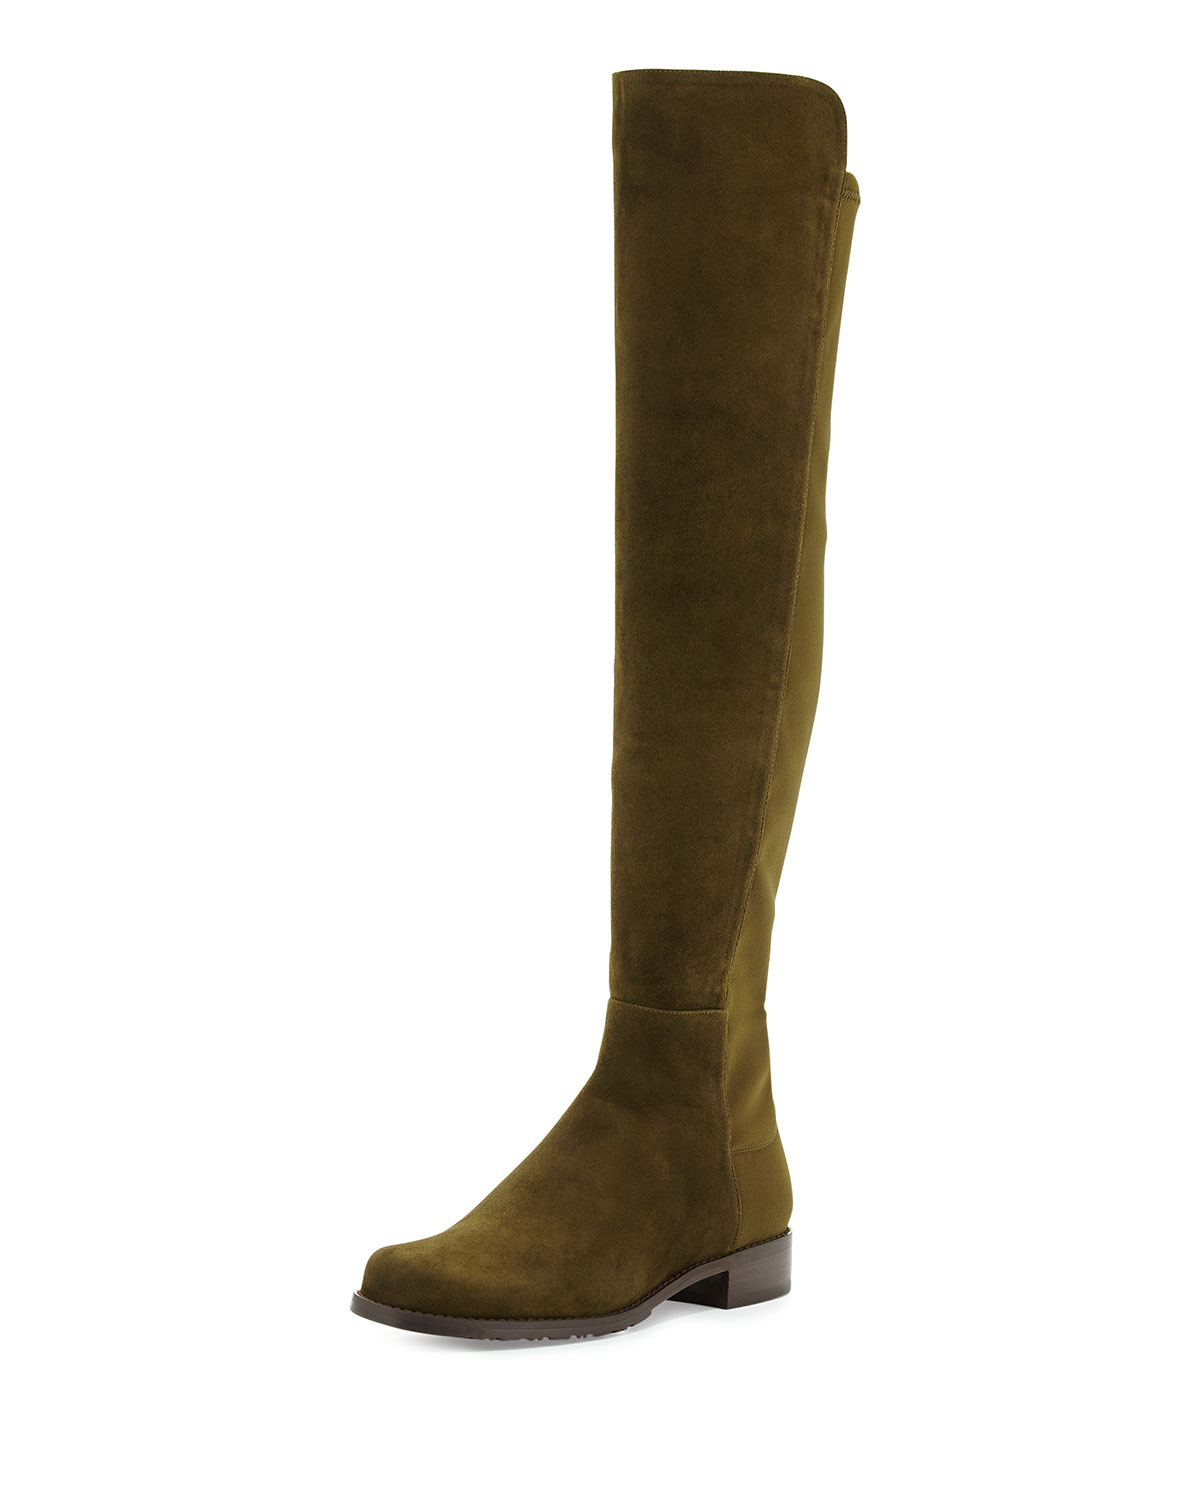 Stuart weitzman 50/50 Suede Over-the-knee Boot in Green | Lyst